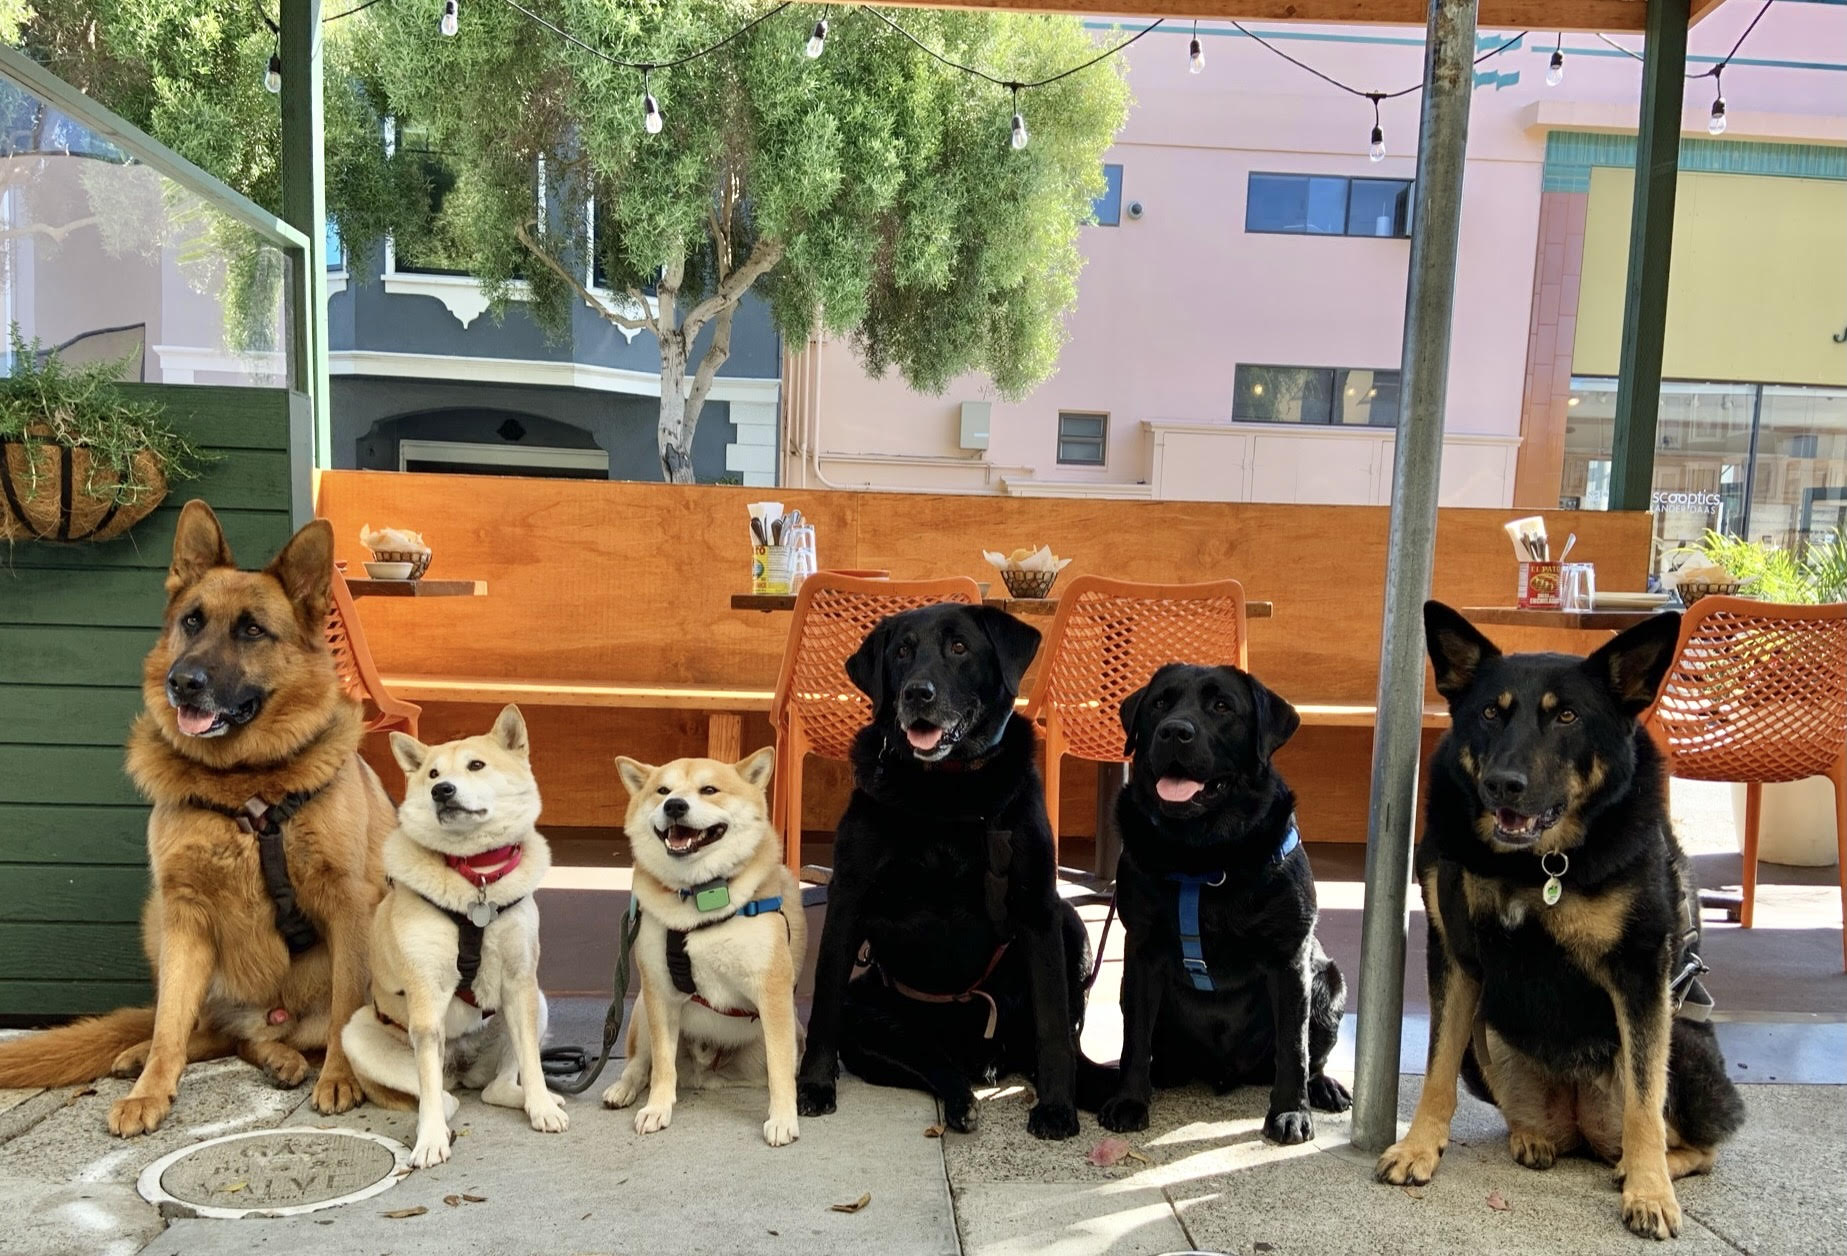 A group of dogs including a German shepherd, two shiba inus, and two black labs sit in front of a booth under umbrellas.